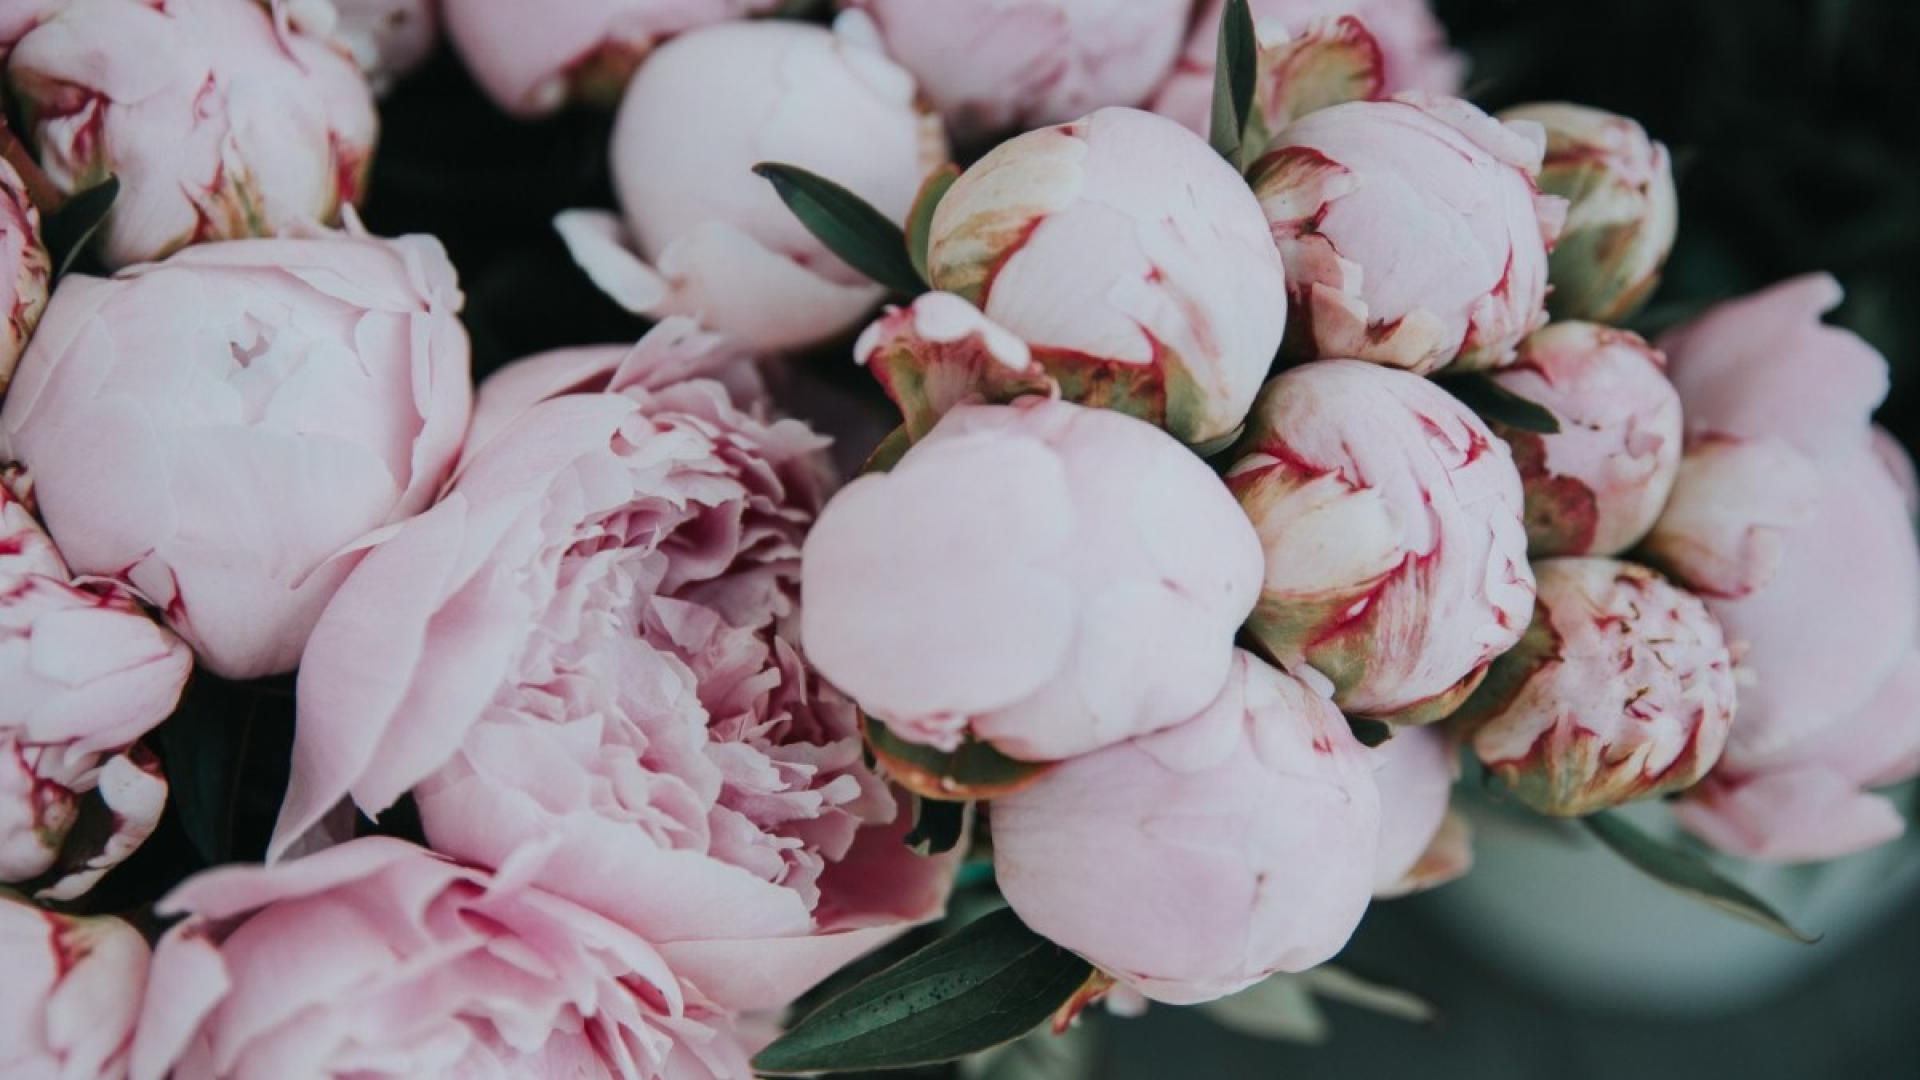 Peony pill offers hope for arthritis sufferers